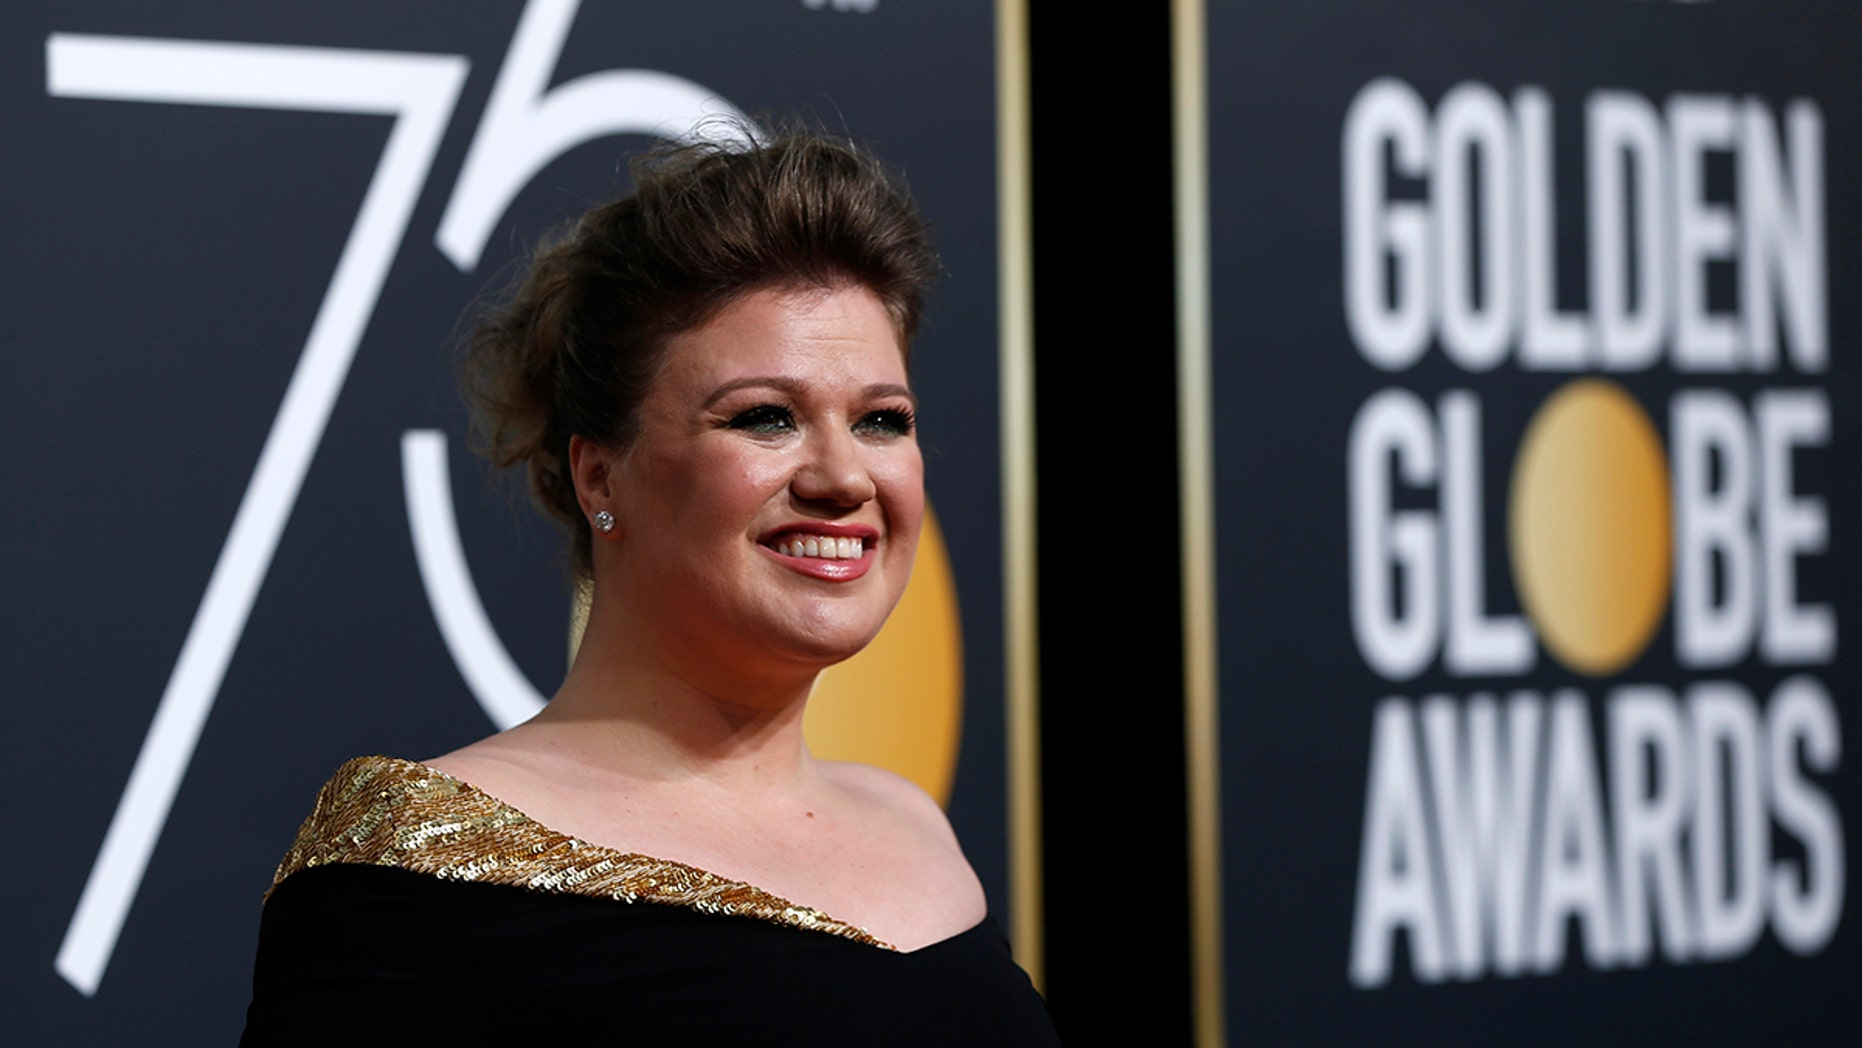 75th Golden Globe Awards – Arrivals – Beverly Hills, California, U.S., 07/01/2018 – Singer Kelly Clarkson. REUTERS/Mario Anzuoni - HP1EE171SPD52